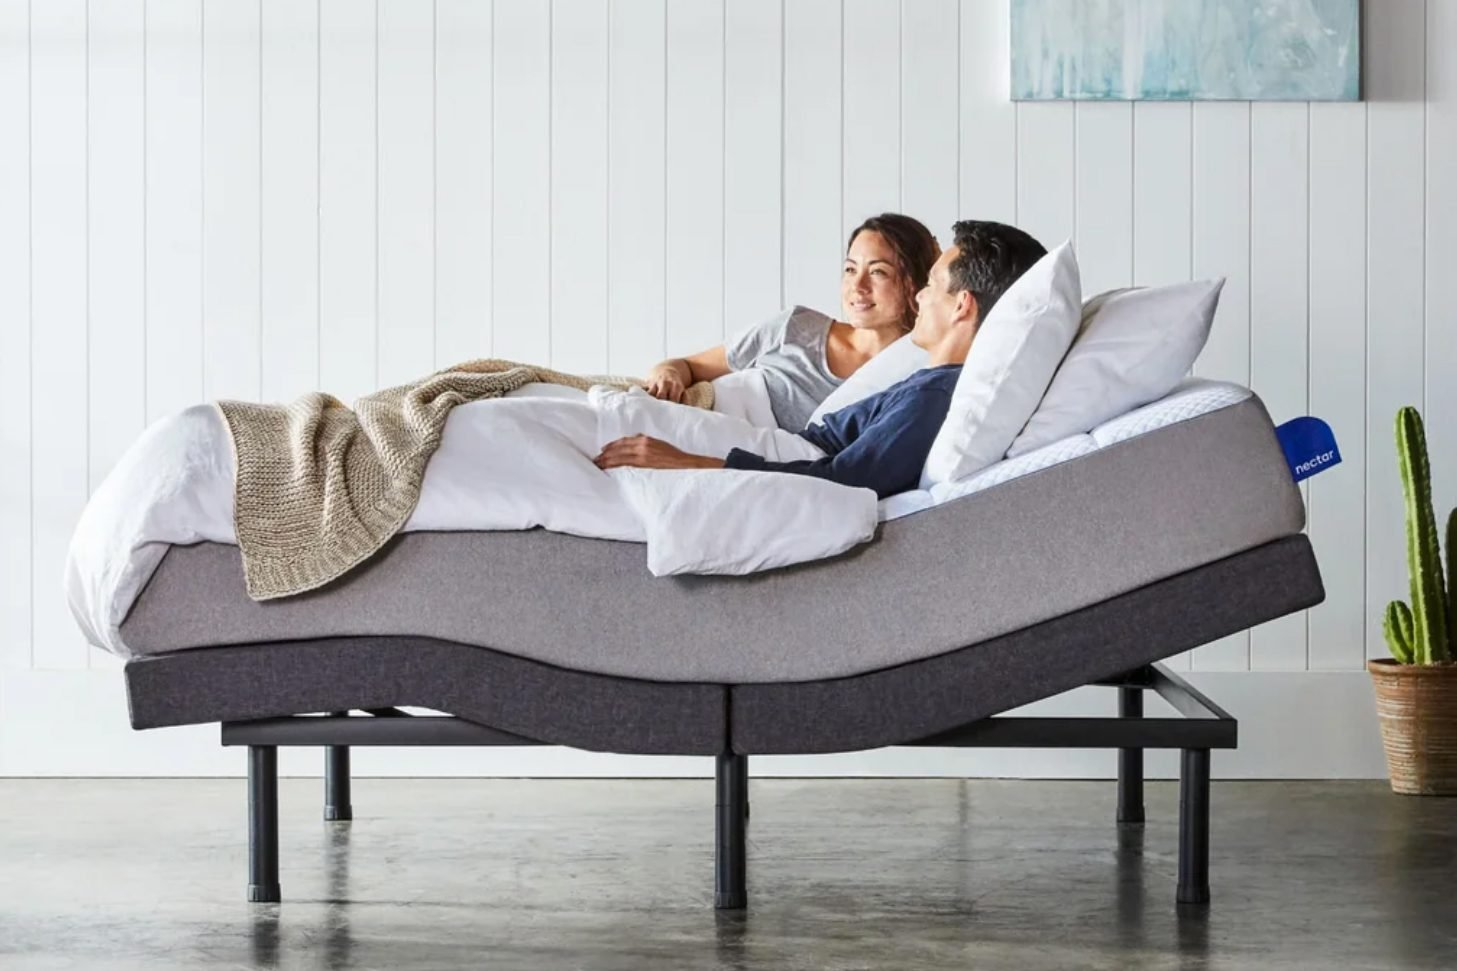 Nectar Sleep: Get $399 worth of accessories with any mattress purchase